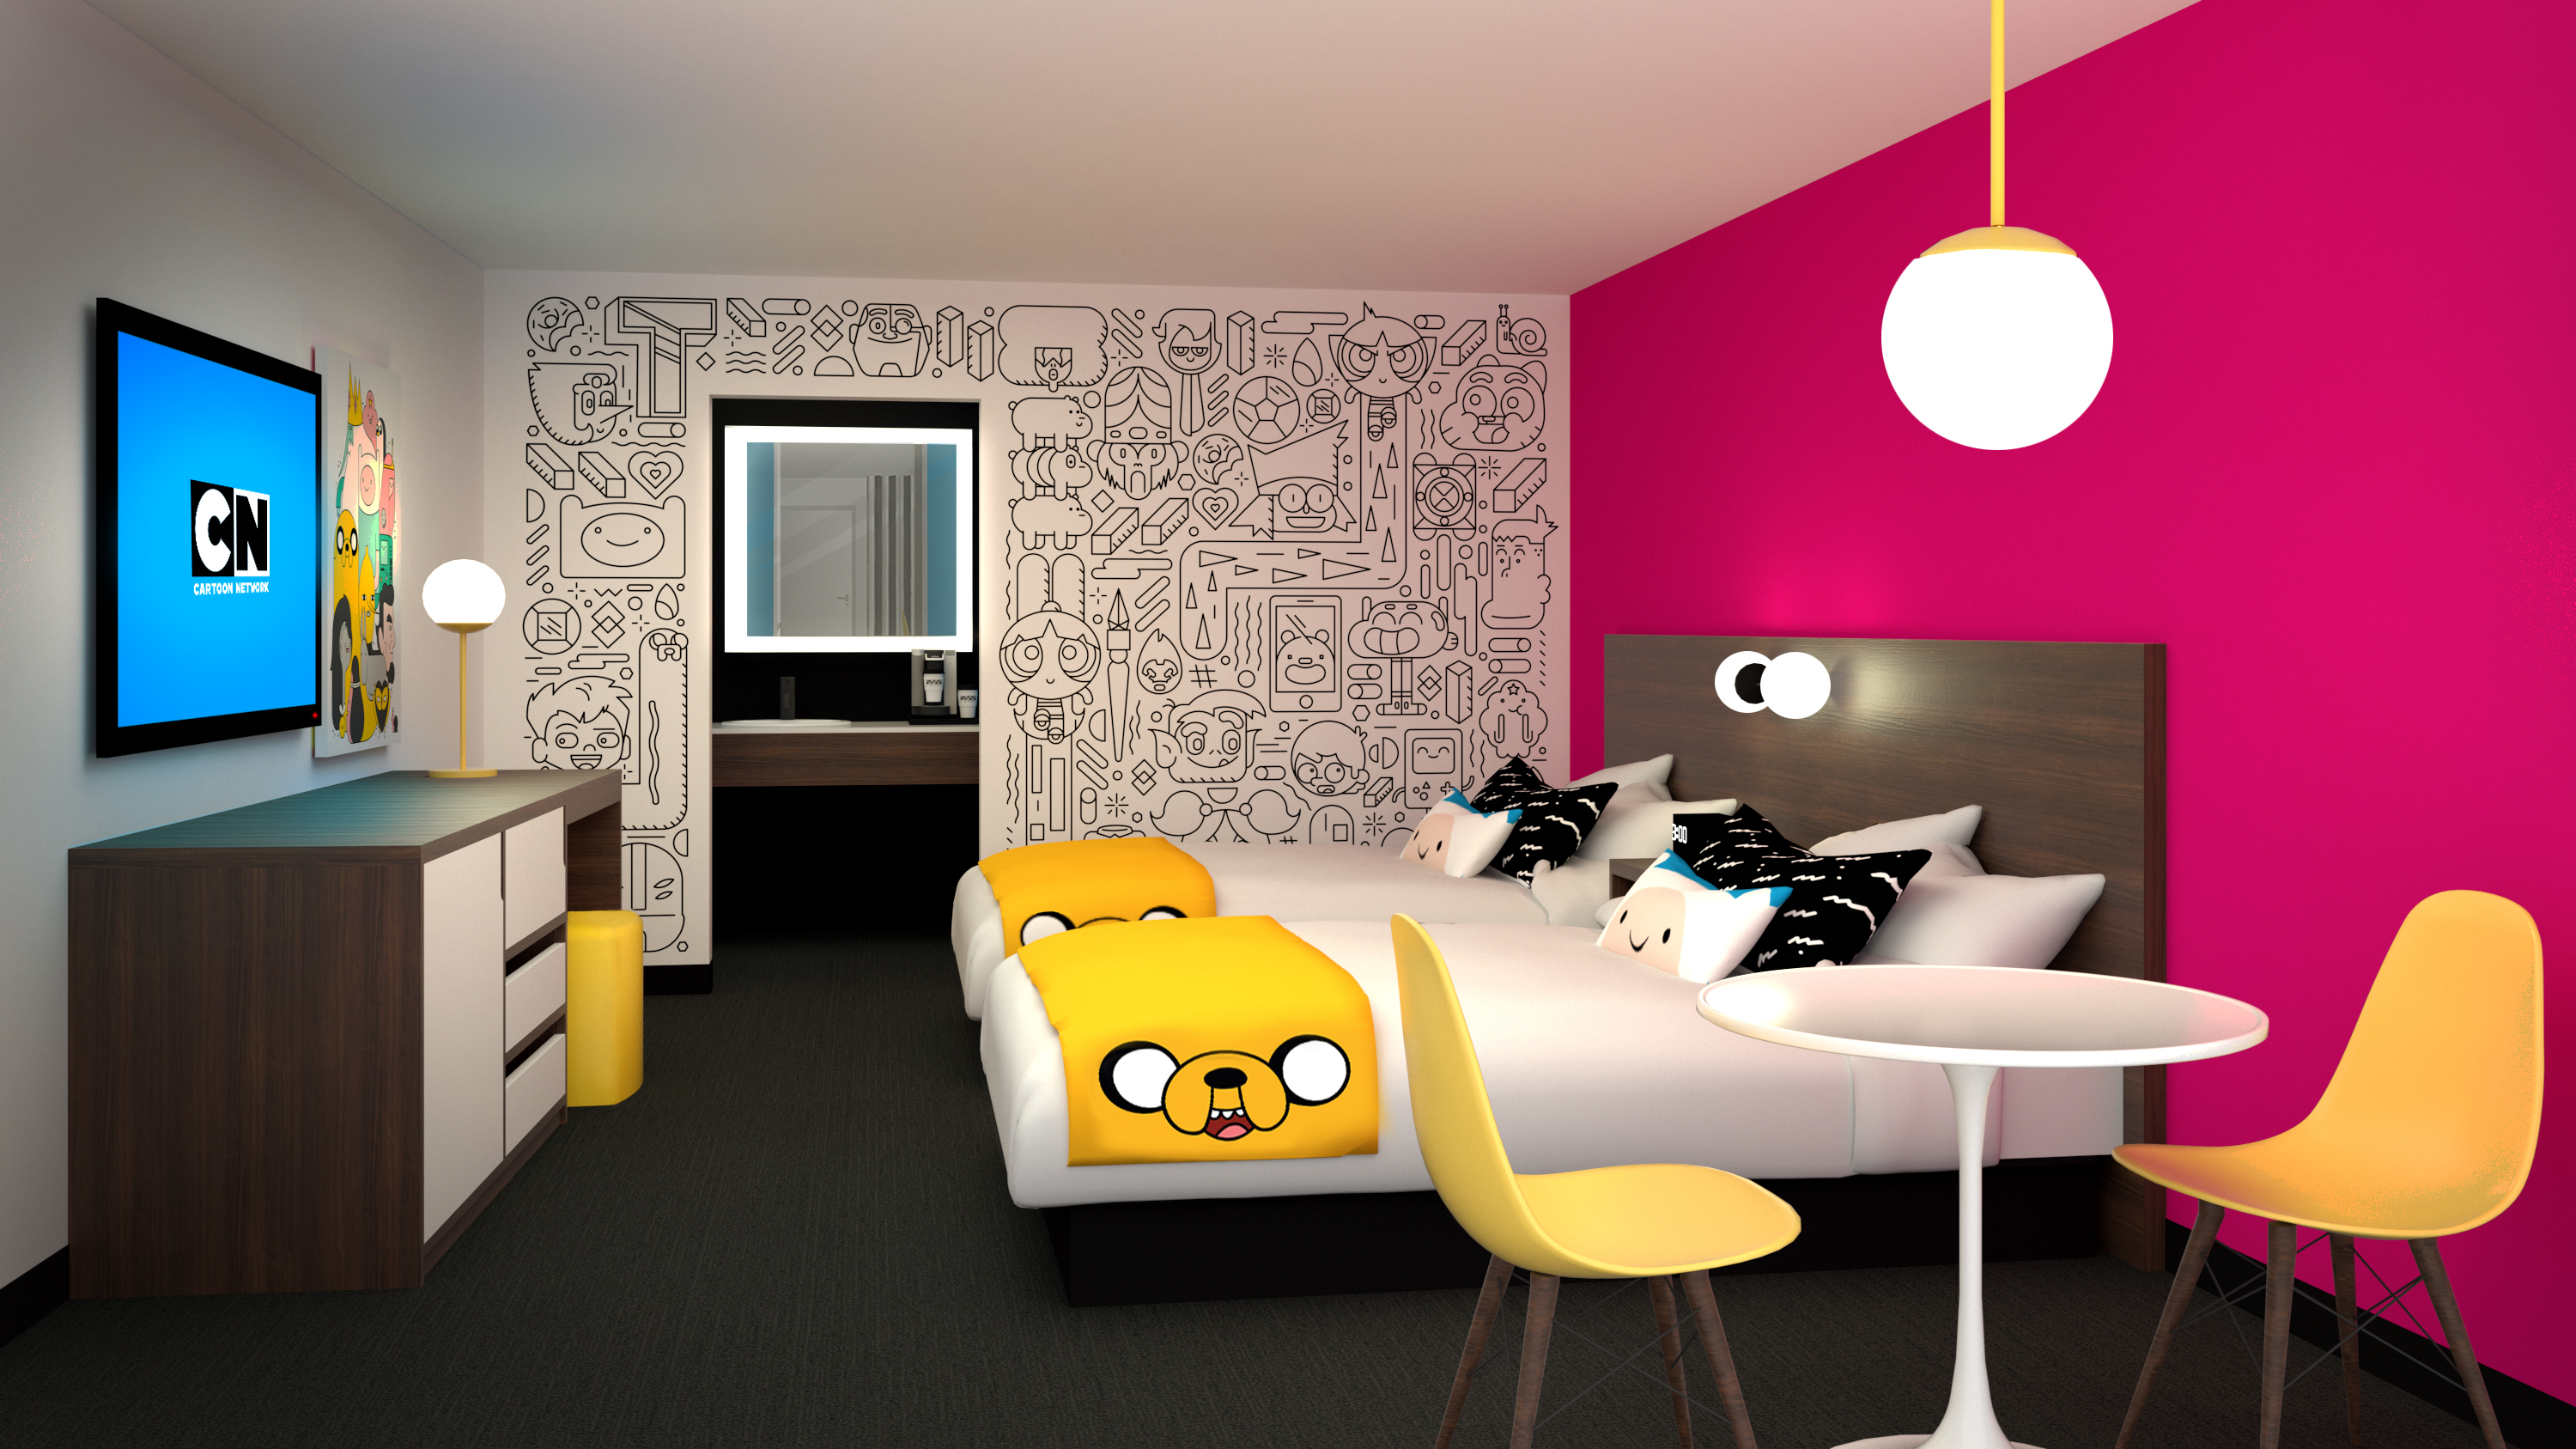 World S First Ever Cartoon Network Hotel Just Opened Unilad